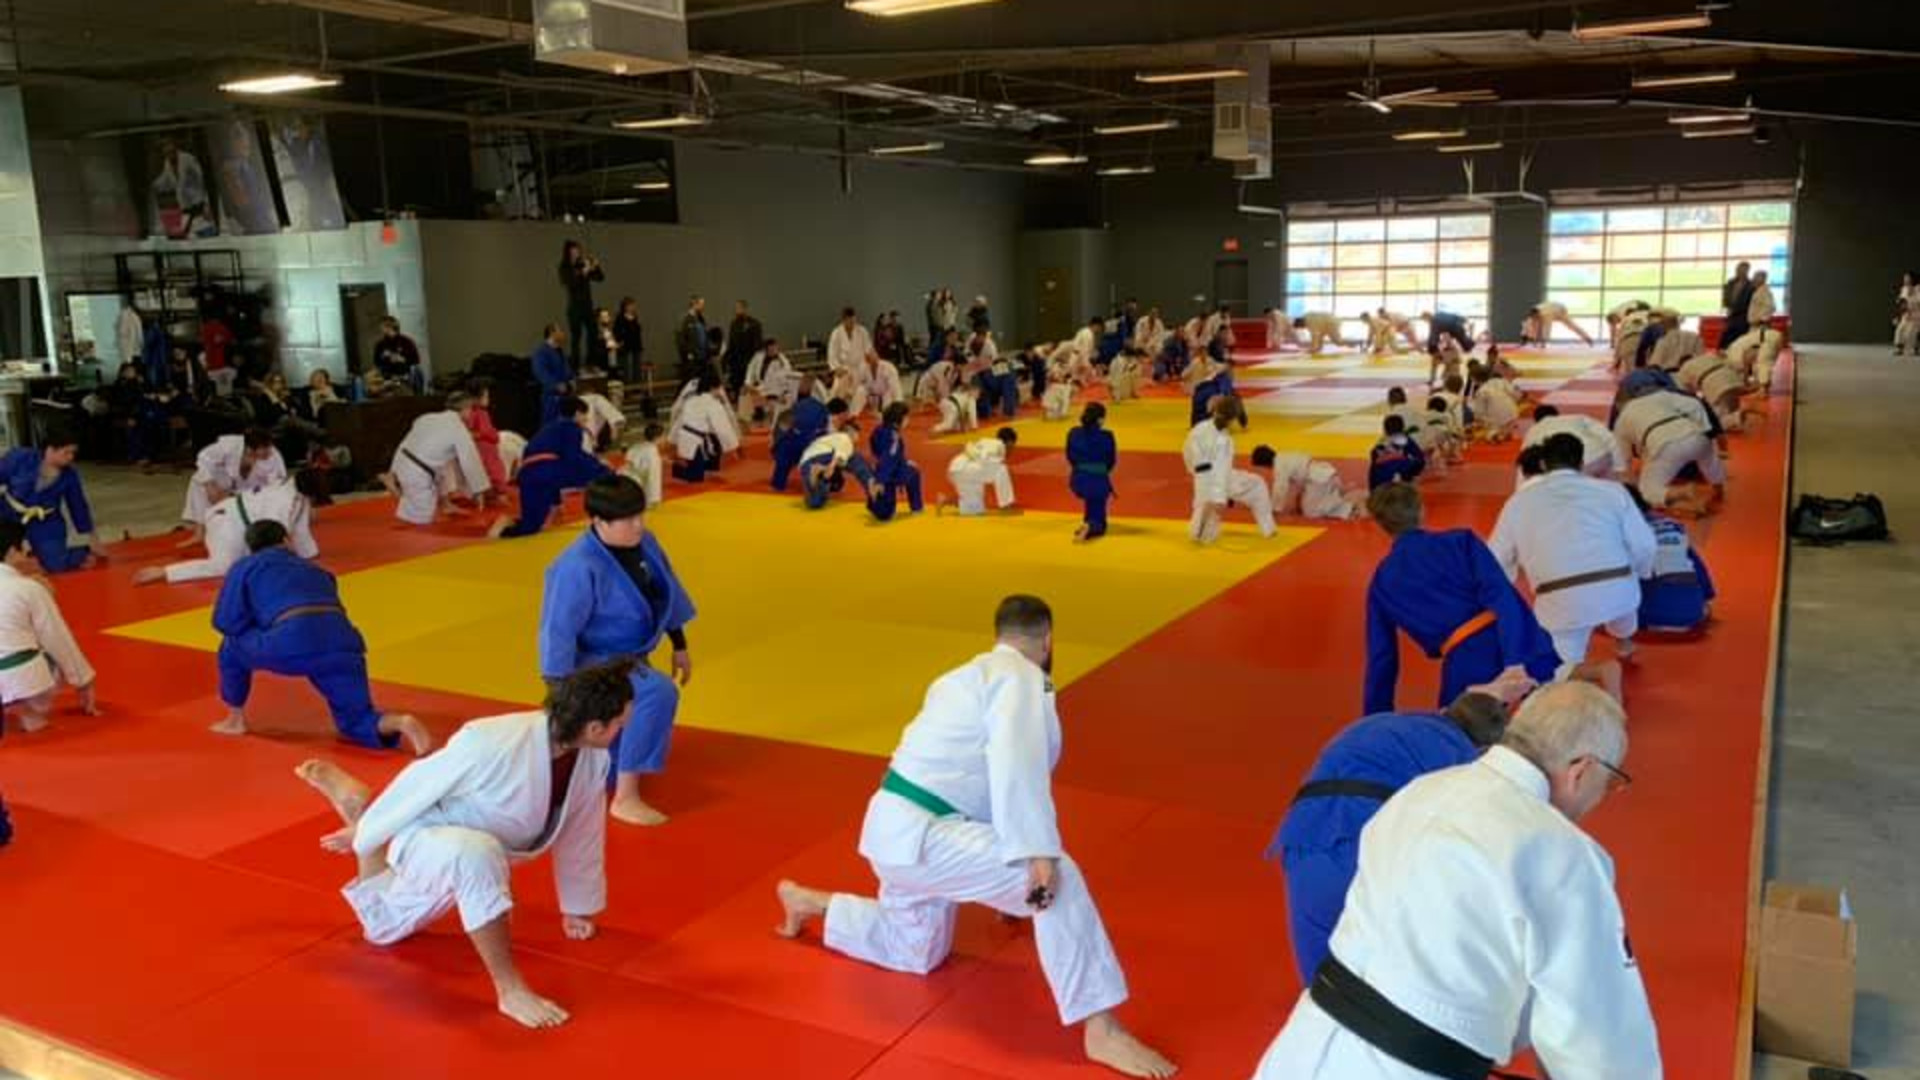 <style> v {   text-shadow: 2px 2px 8px #1e2a55; } </style><v><strong>Kids Martial Arts - Adult Martial Arts - Competition Judo